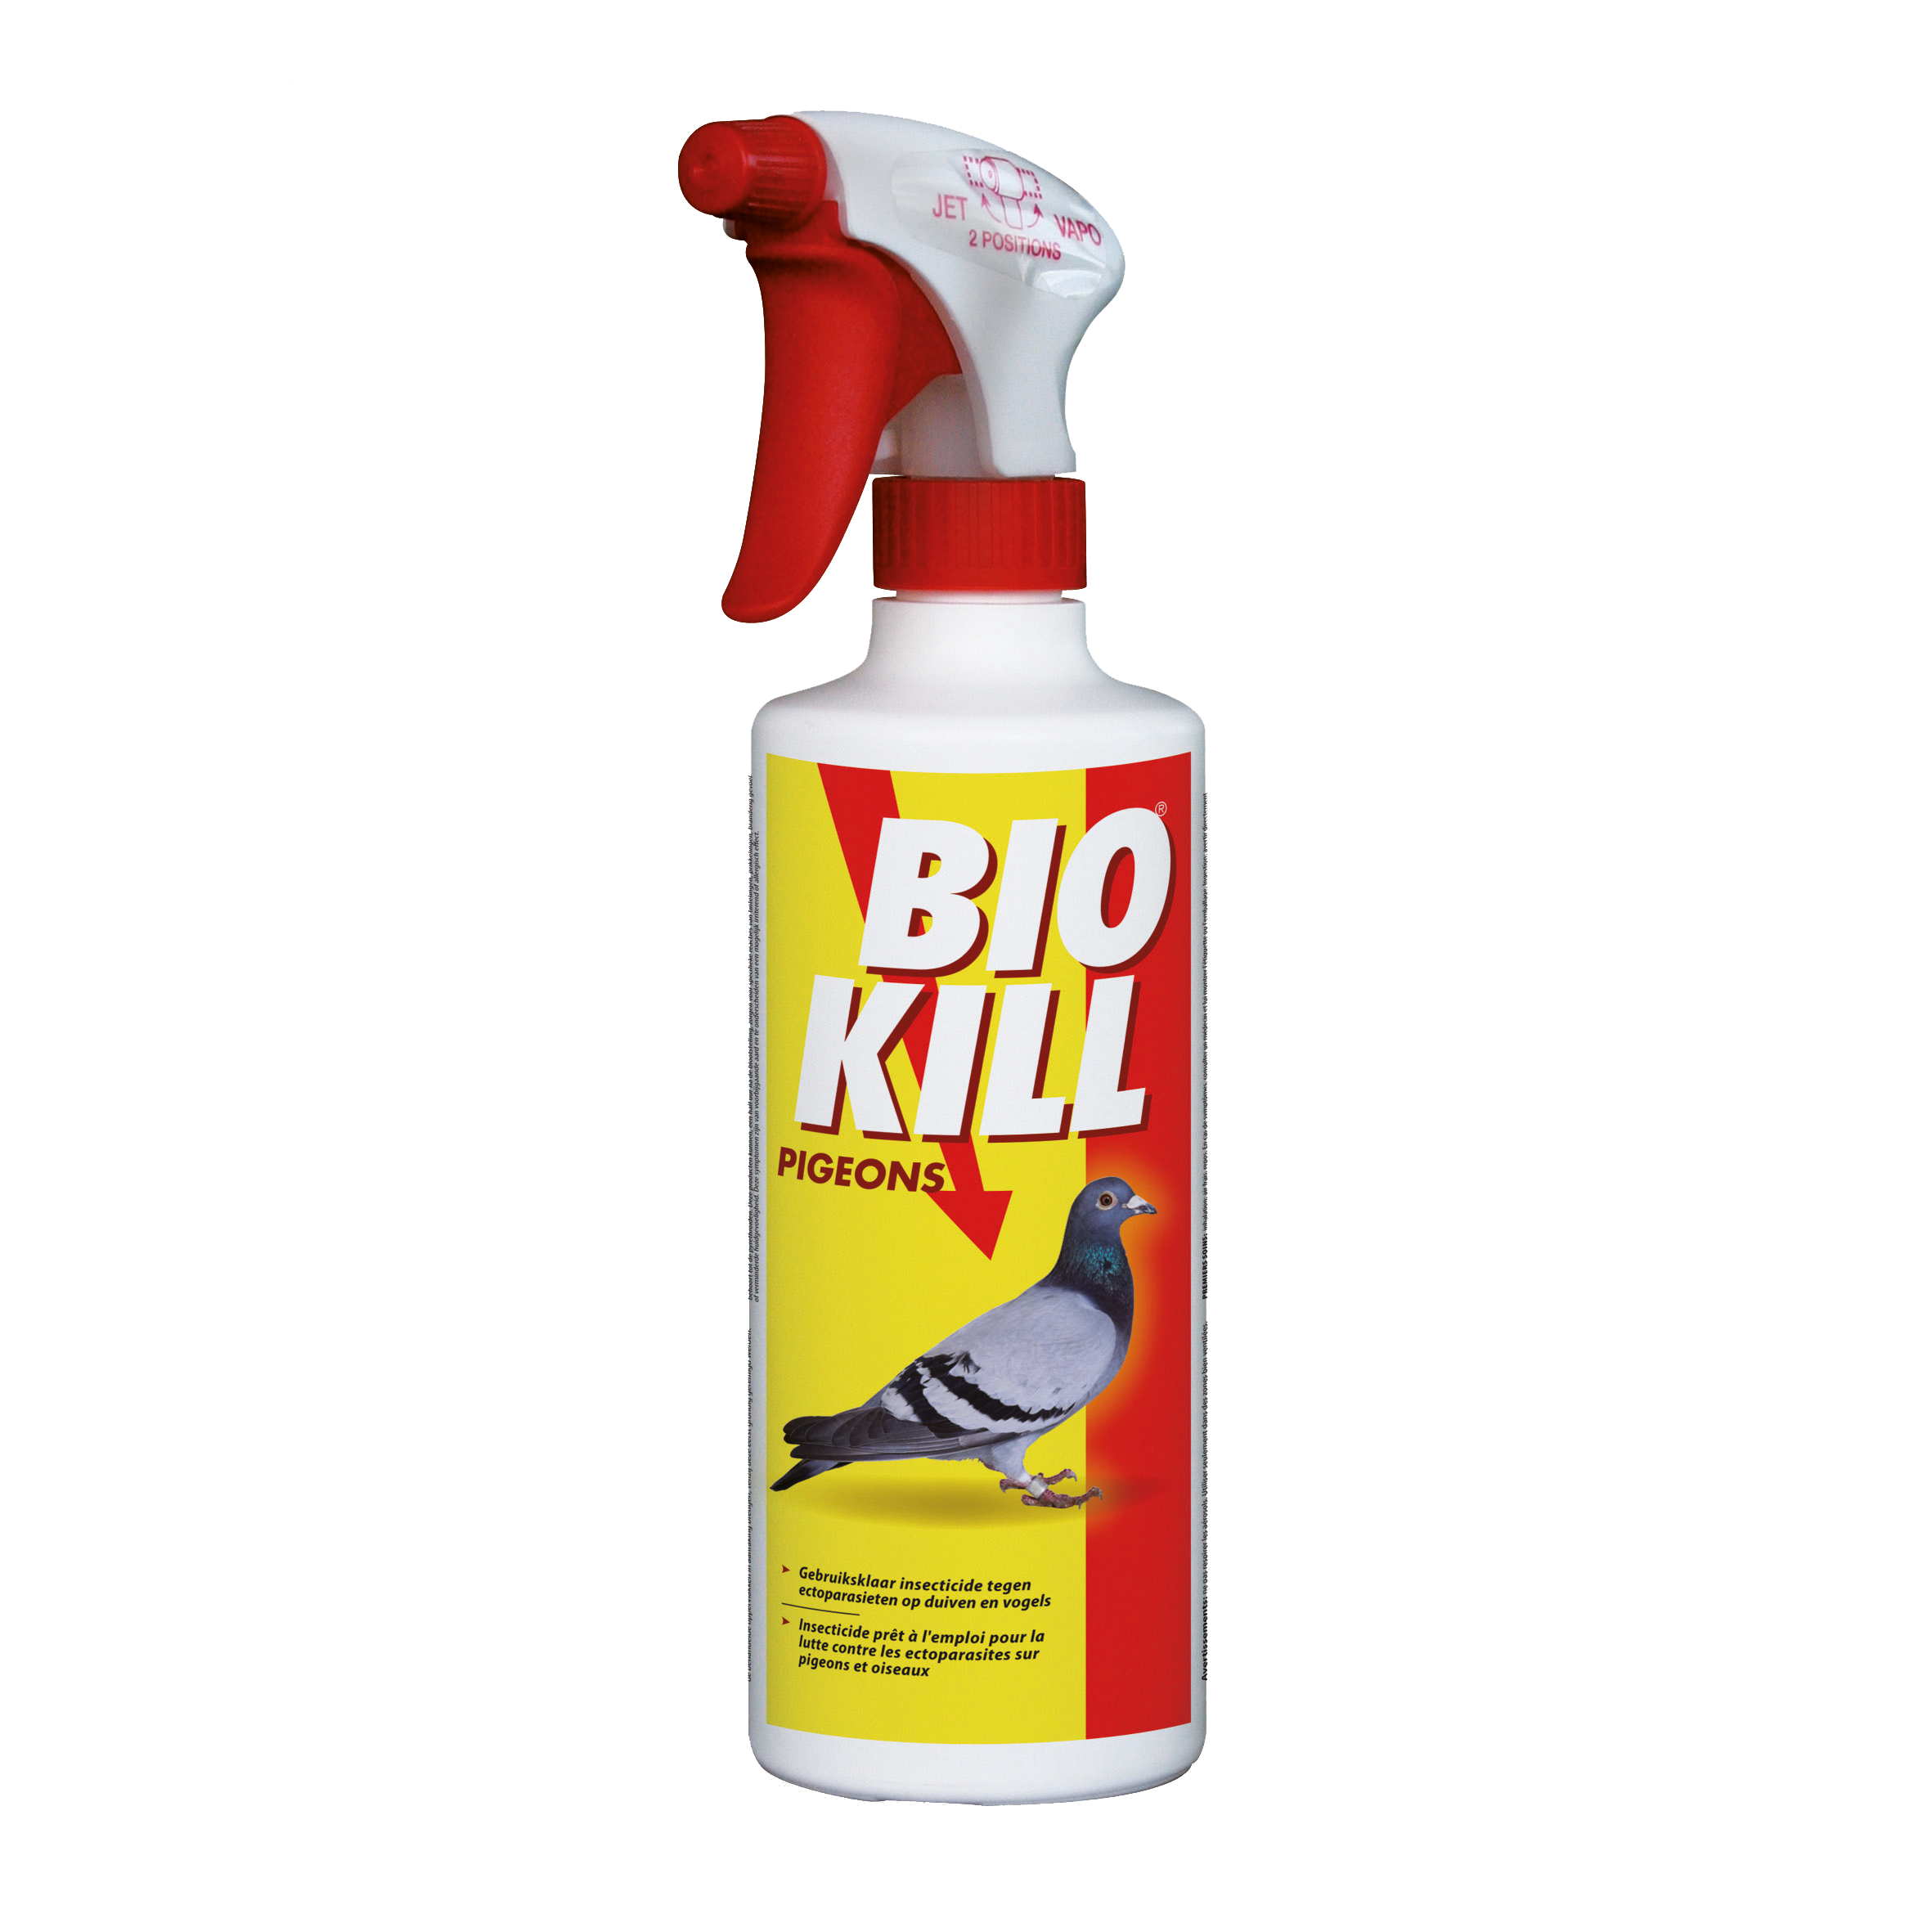 Bio Kill Pigeon ® 500ml  Erk. Nr. 193/B image